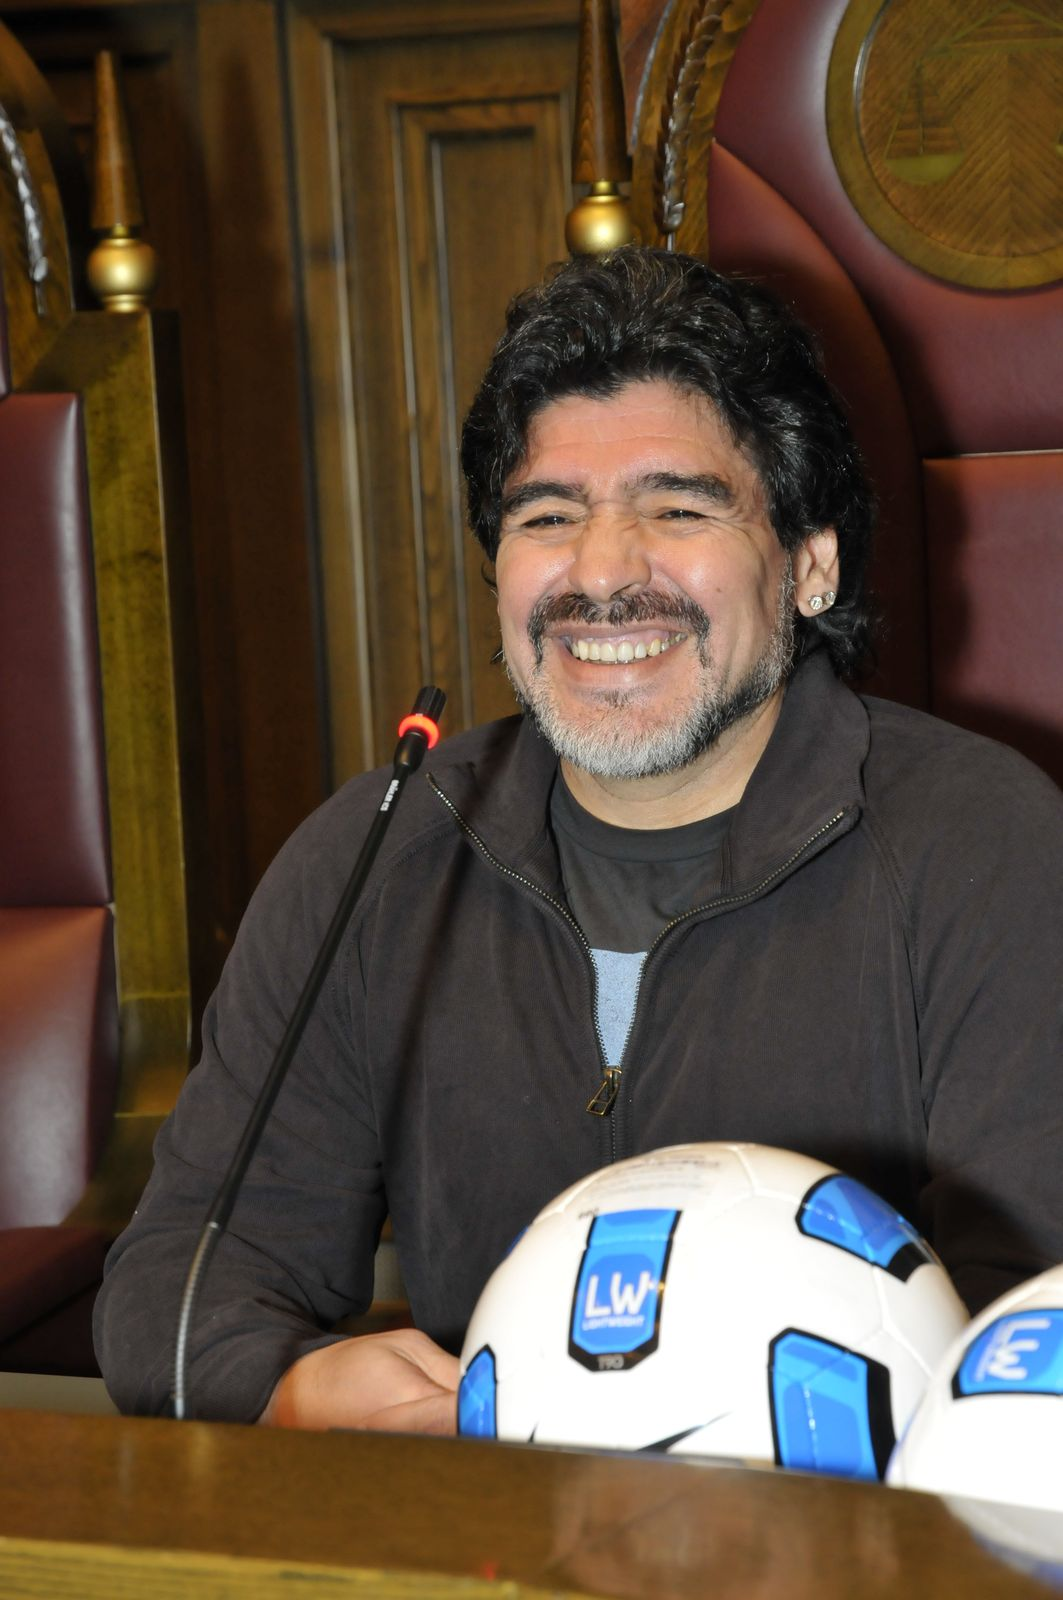 Le footballeur Diego Maradona | Photo : Getty Images